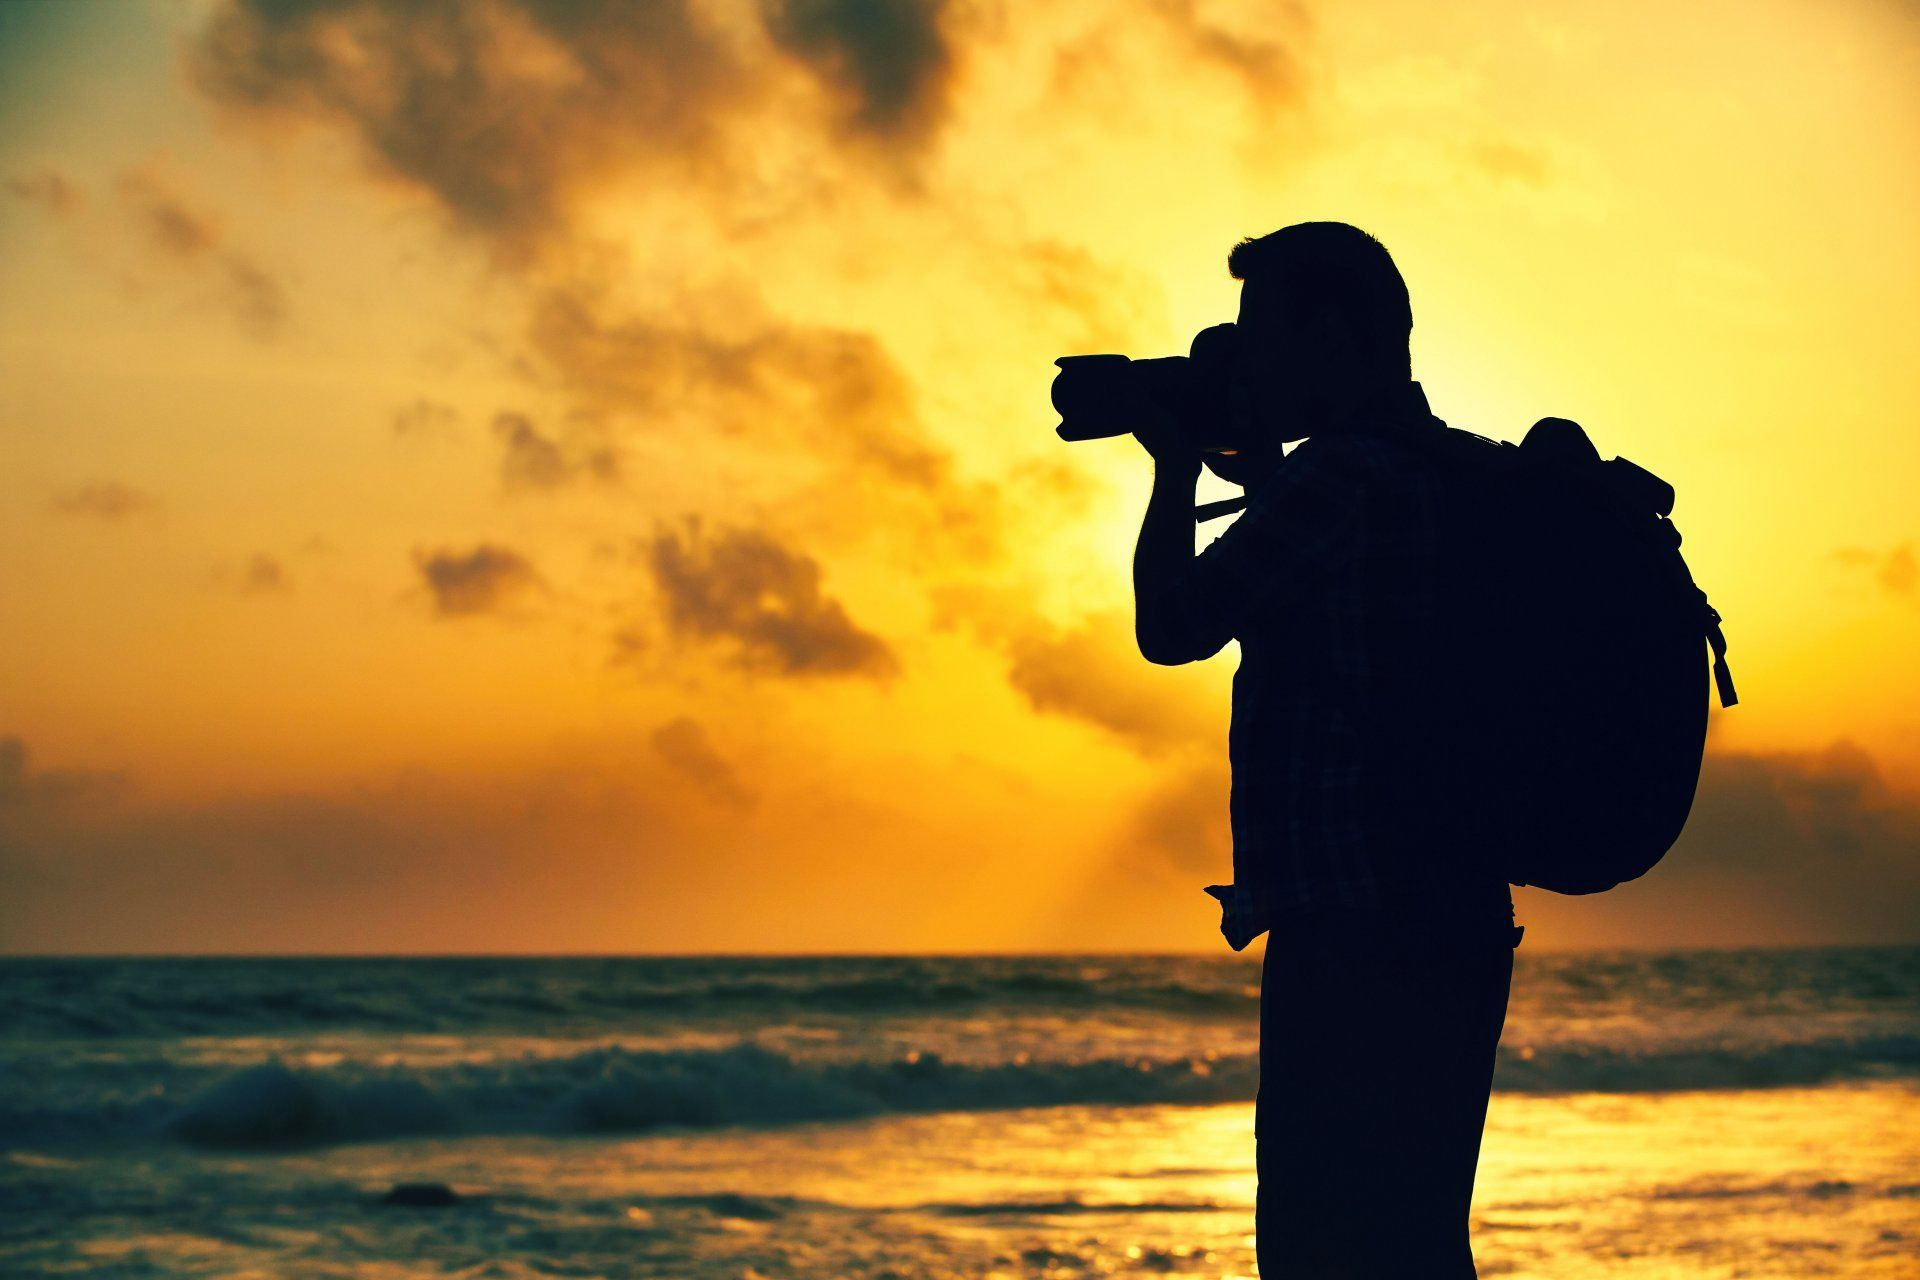 Man Traveller Silhouette Photographer Photos The Camera A Circuit Board Promotiononline Shopping For Promotional Removes Nature Night Sunset Sea Nice Background